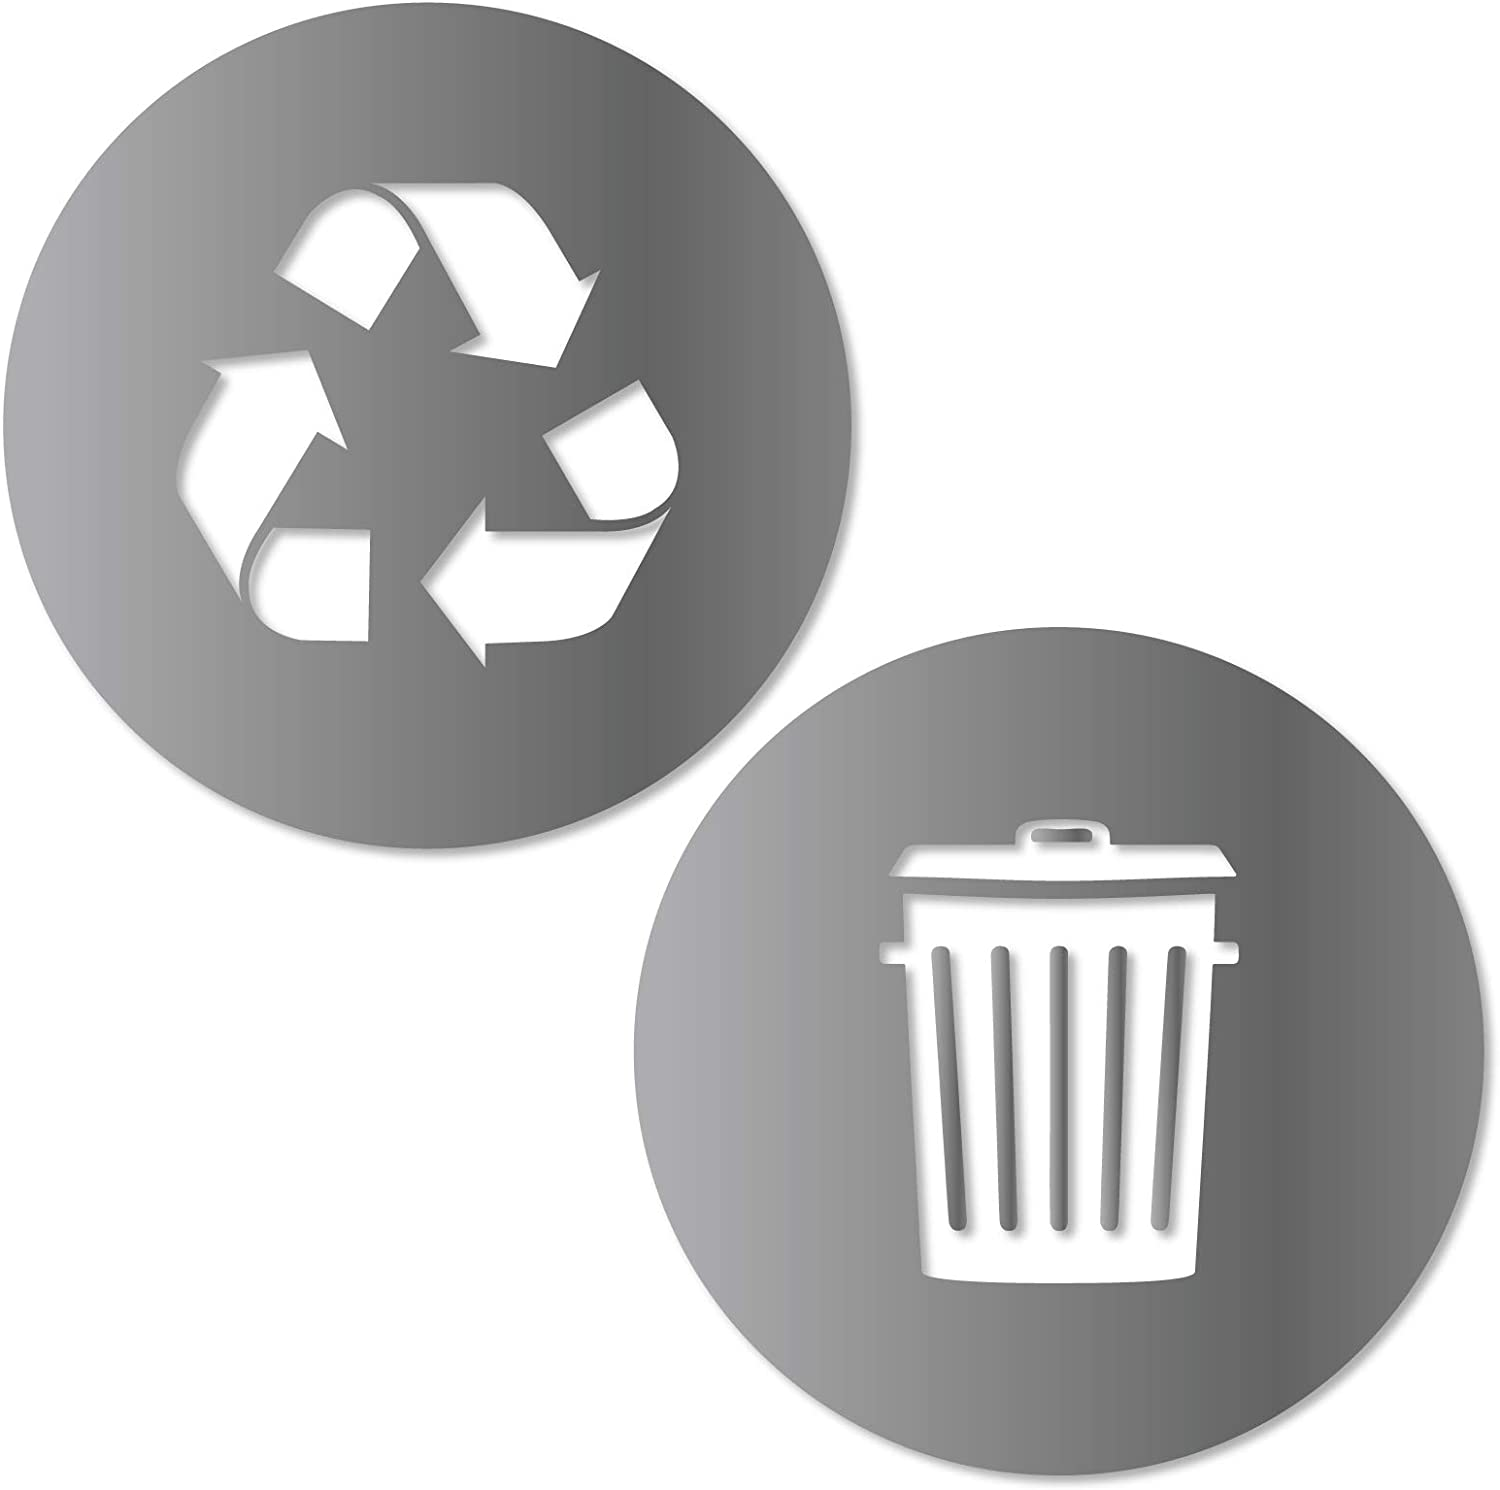 Recycle and Trash Sticker Logo Style 2 (5.5in x5.5in) Symbol to Organize Trash cans or Garbage containers and Walls - Small Silver Metallic Vinyl Decal Sticker